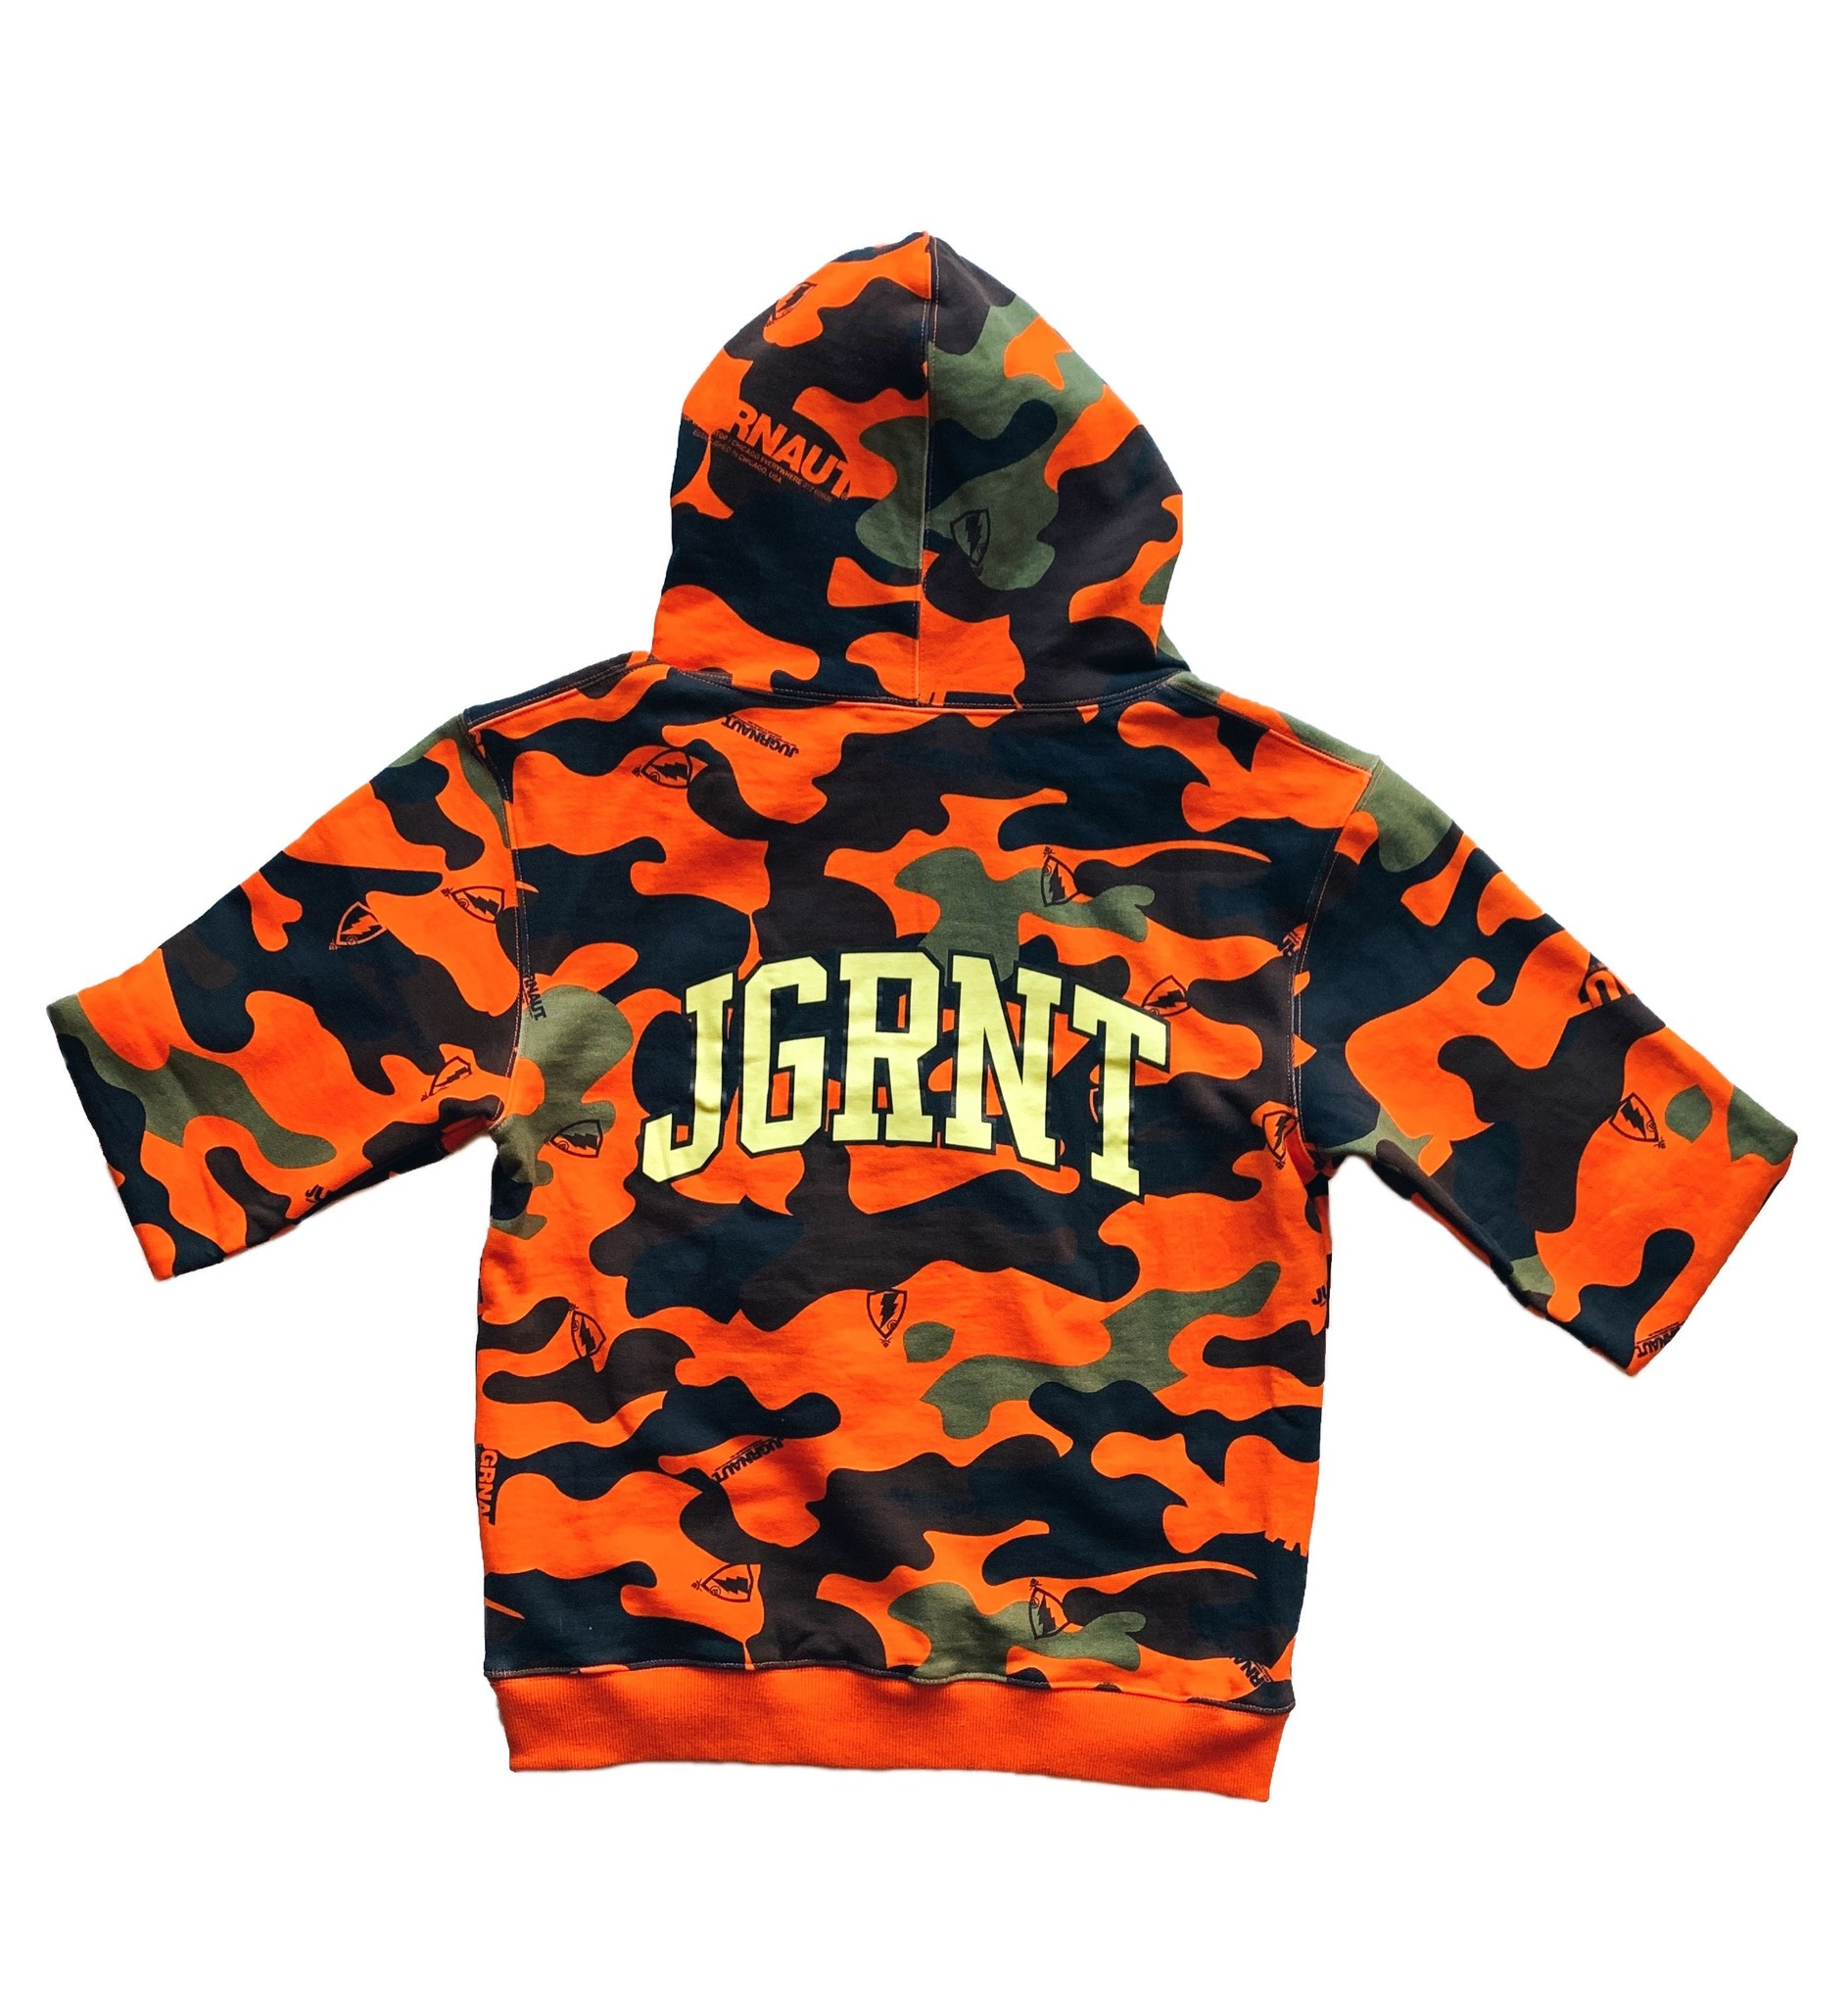 Jugrnaut Jugrnaut Signature Camo Hoody Orange